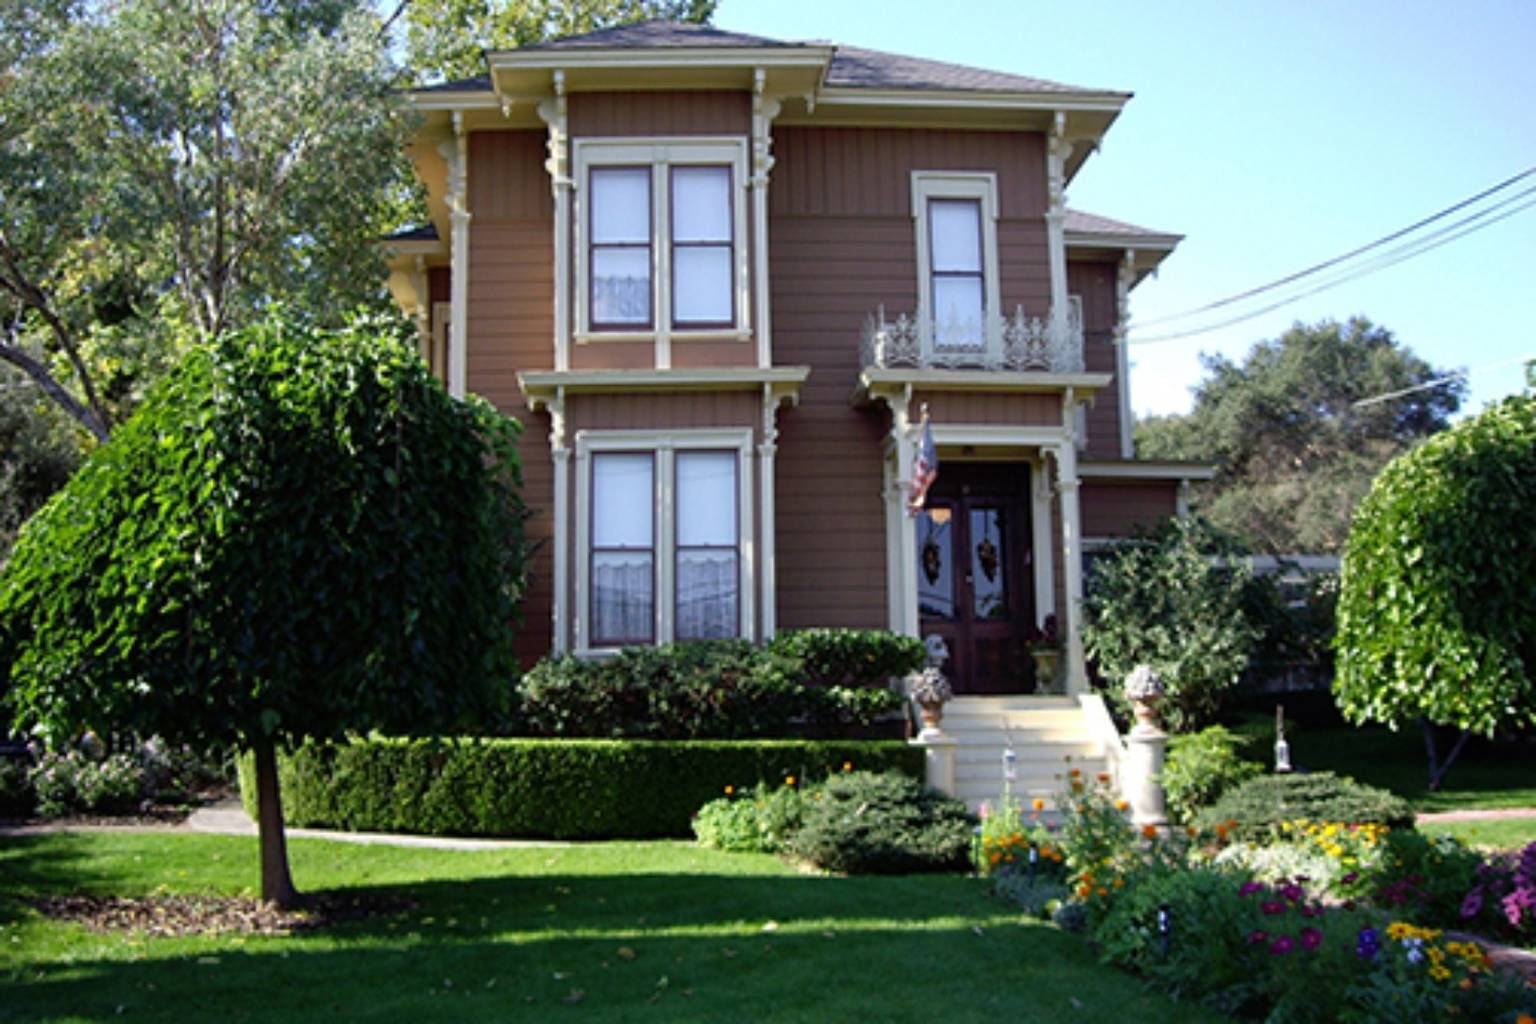 A house with bushes in front of a building at Hope-Merrill House Wine Country Inn.